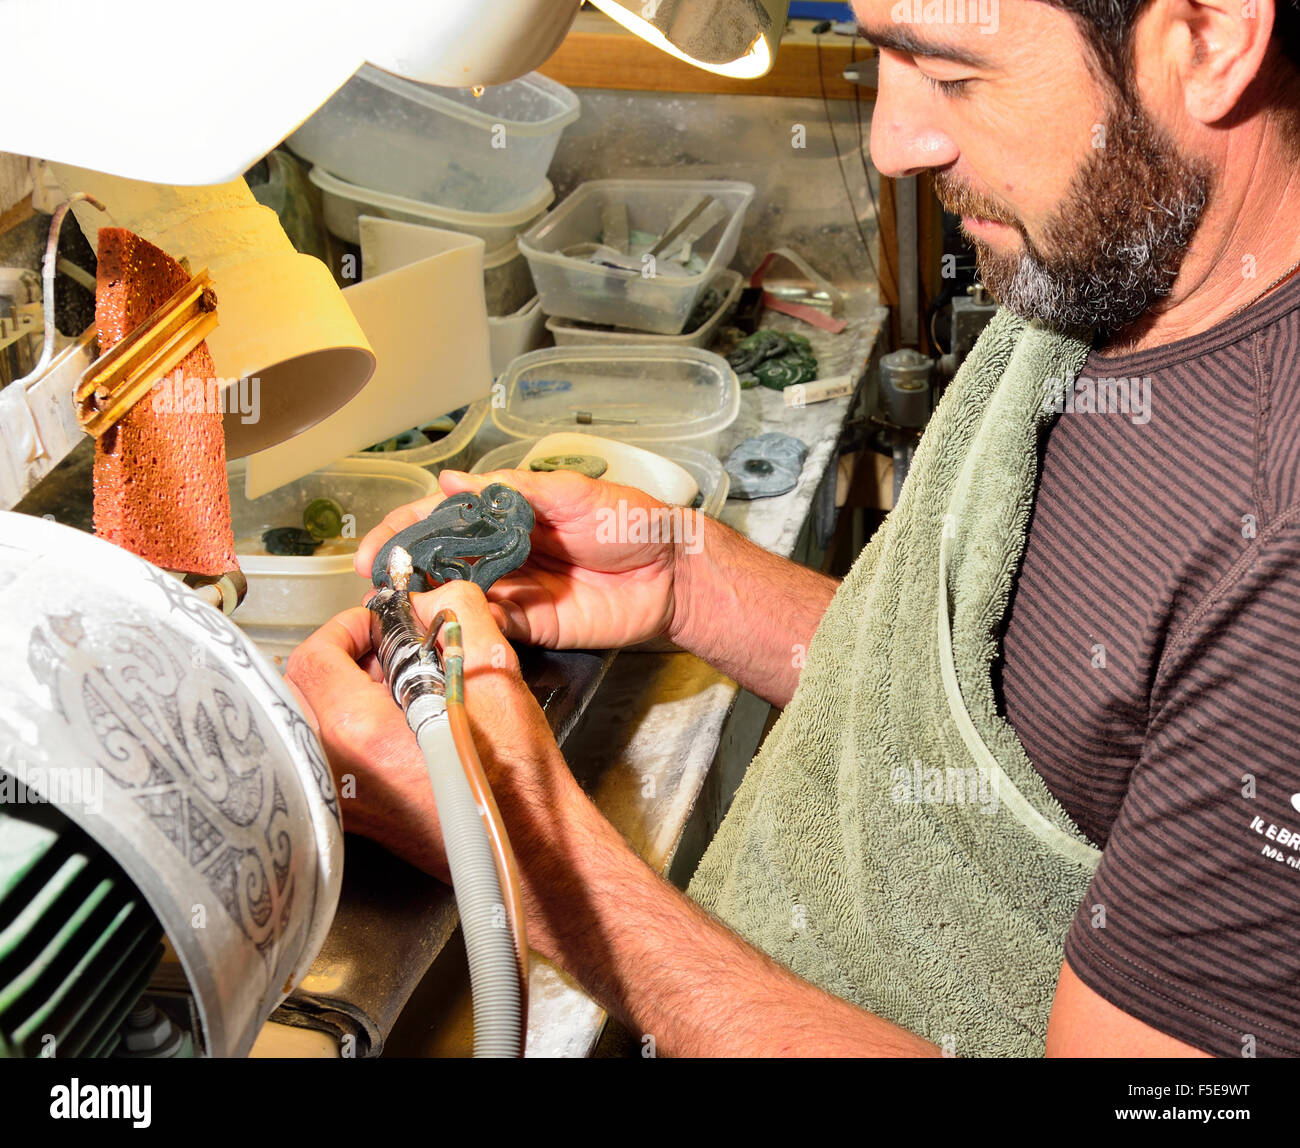 Garth Wilson in his studio carving Jade which was found in the local rivers and mountains into Maori jewellery and - Stock Image